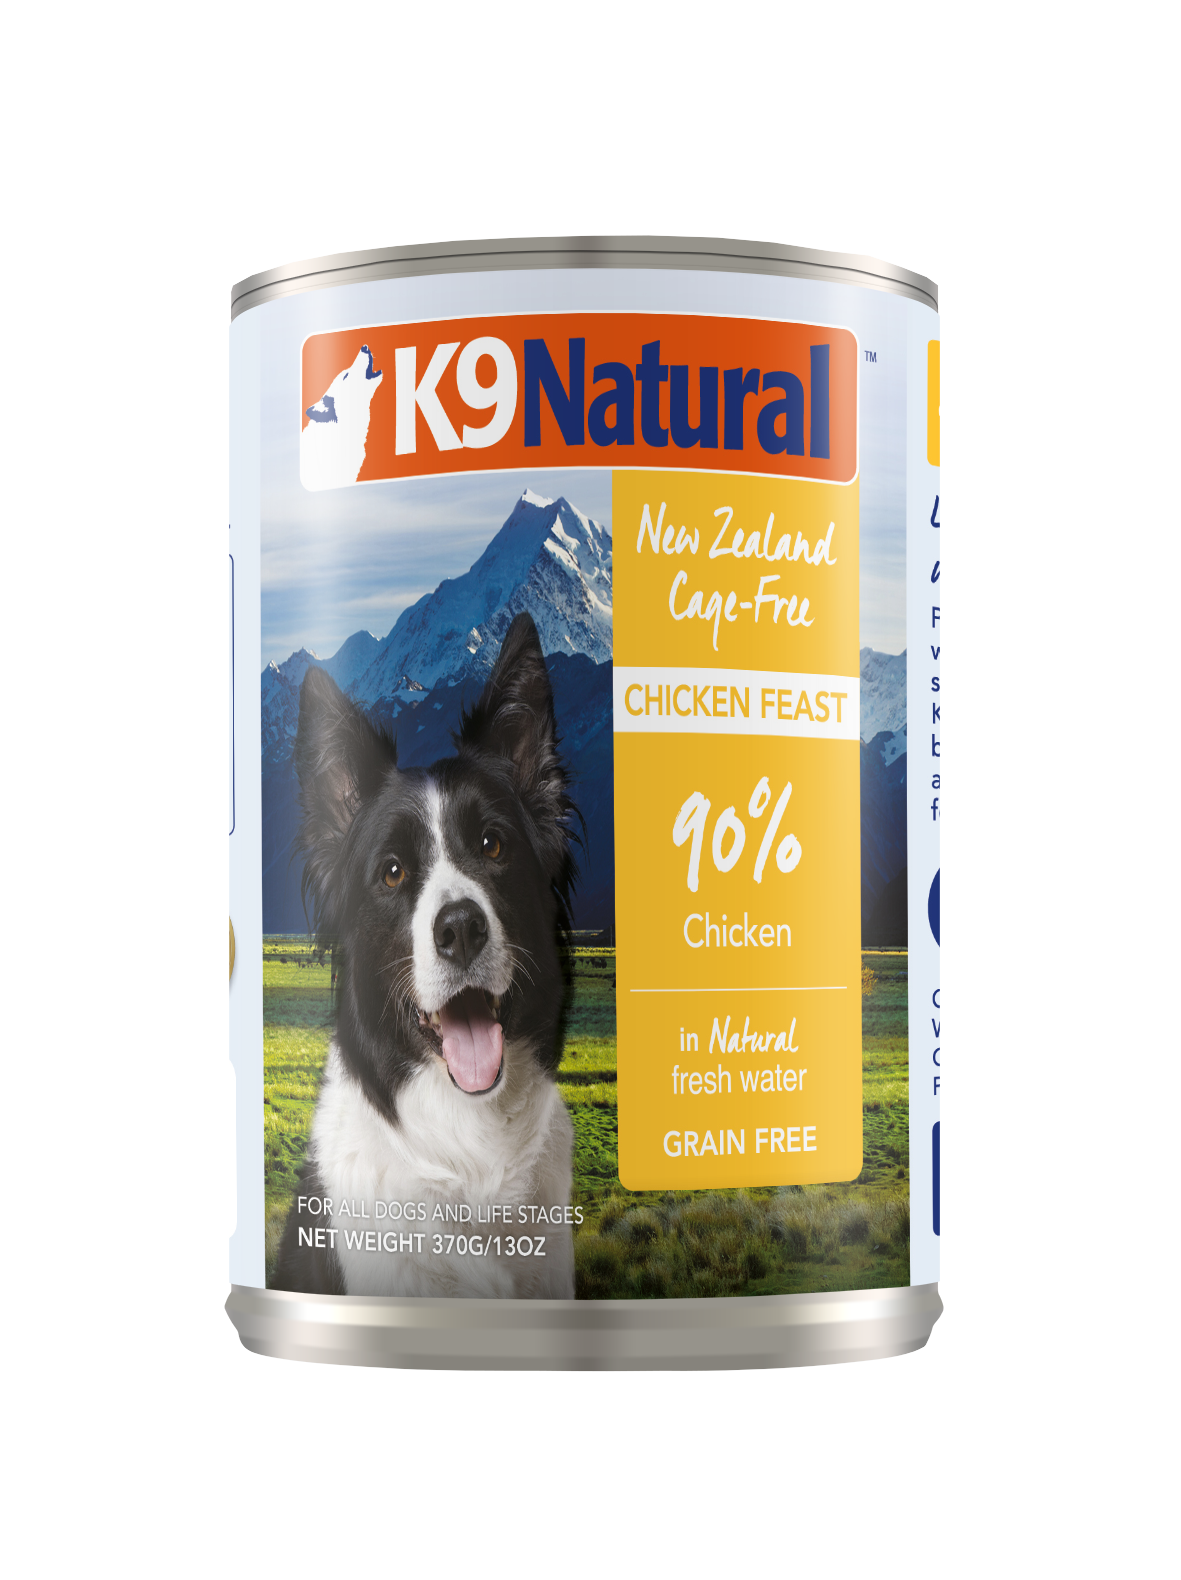 K9 Natural K9 Natural Chicken Feast Wet Dog Food 13oz